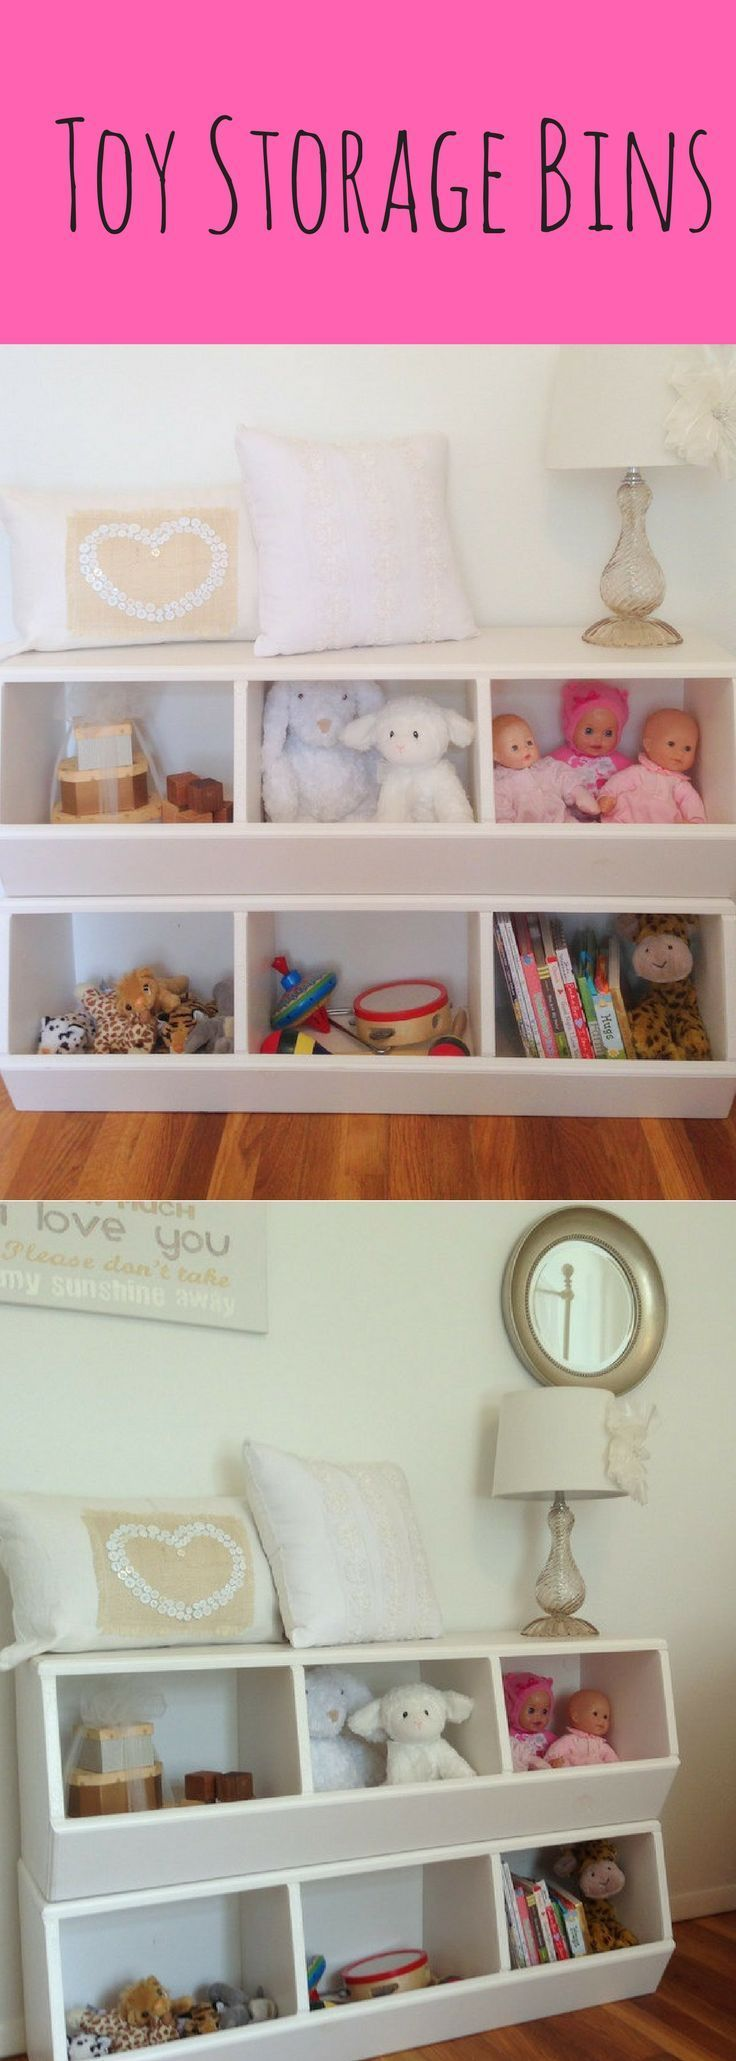 Frugal tips for organizing kids rooms thrifty nw mom fresh bedrooms - The 25 Best Organizing Kids Toys Ideas On Pinterest Toy Room Organization Toy Storage And Kids Storage